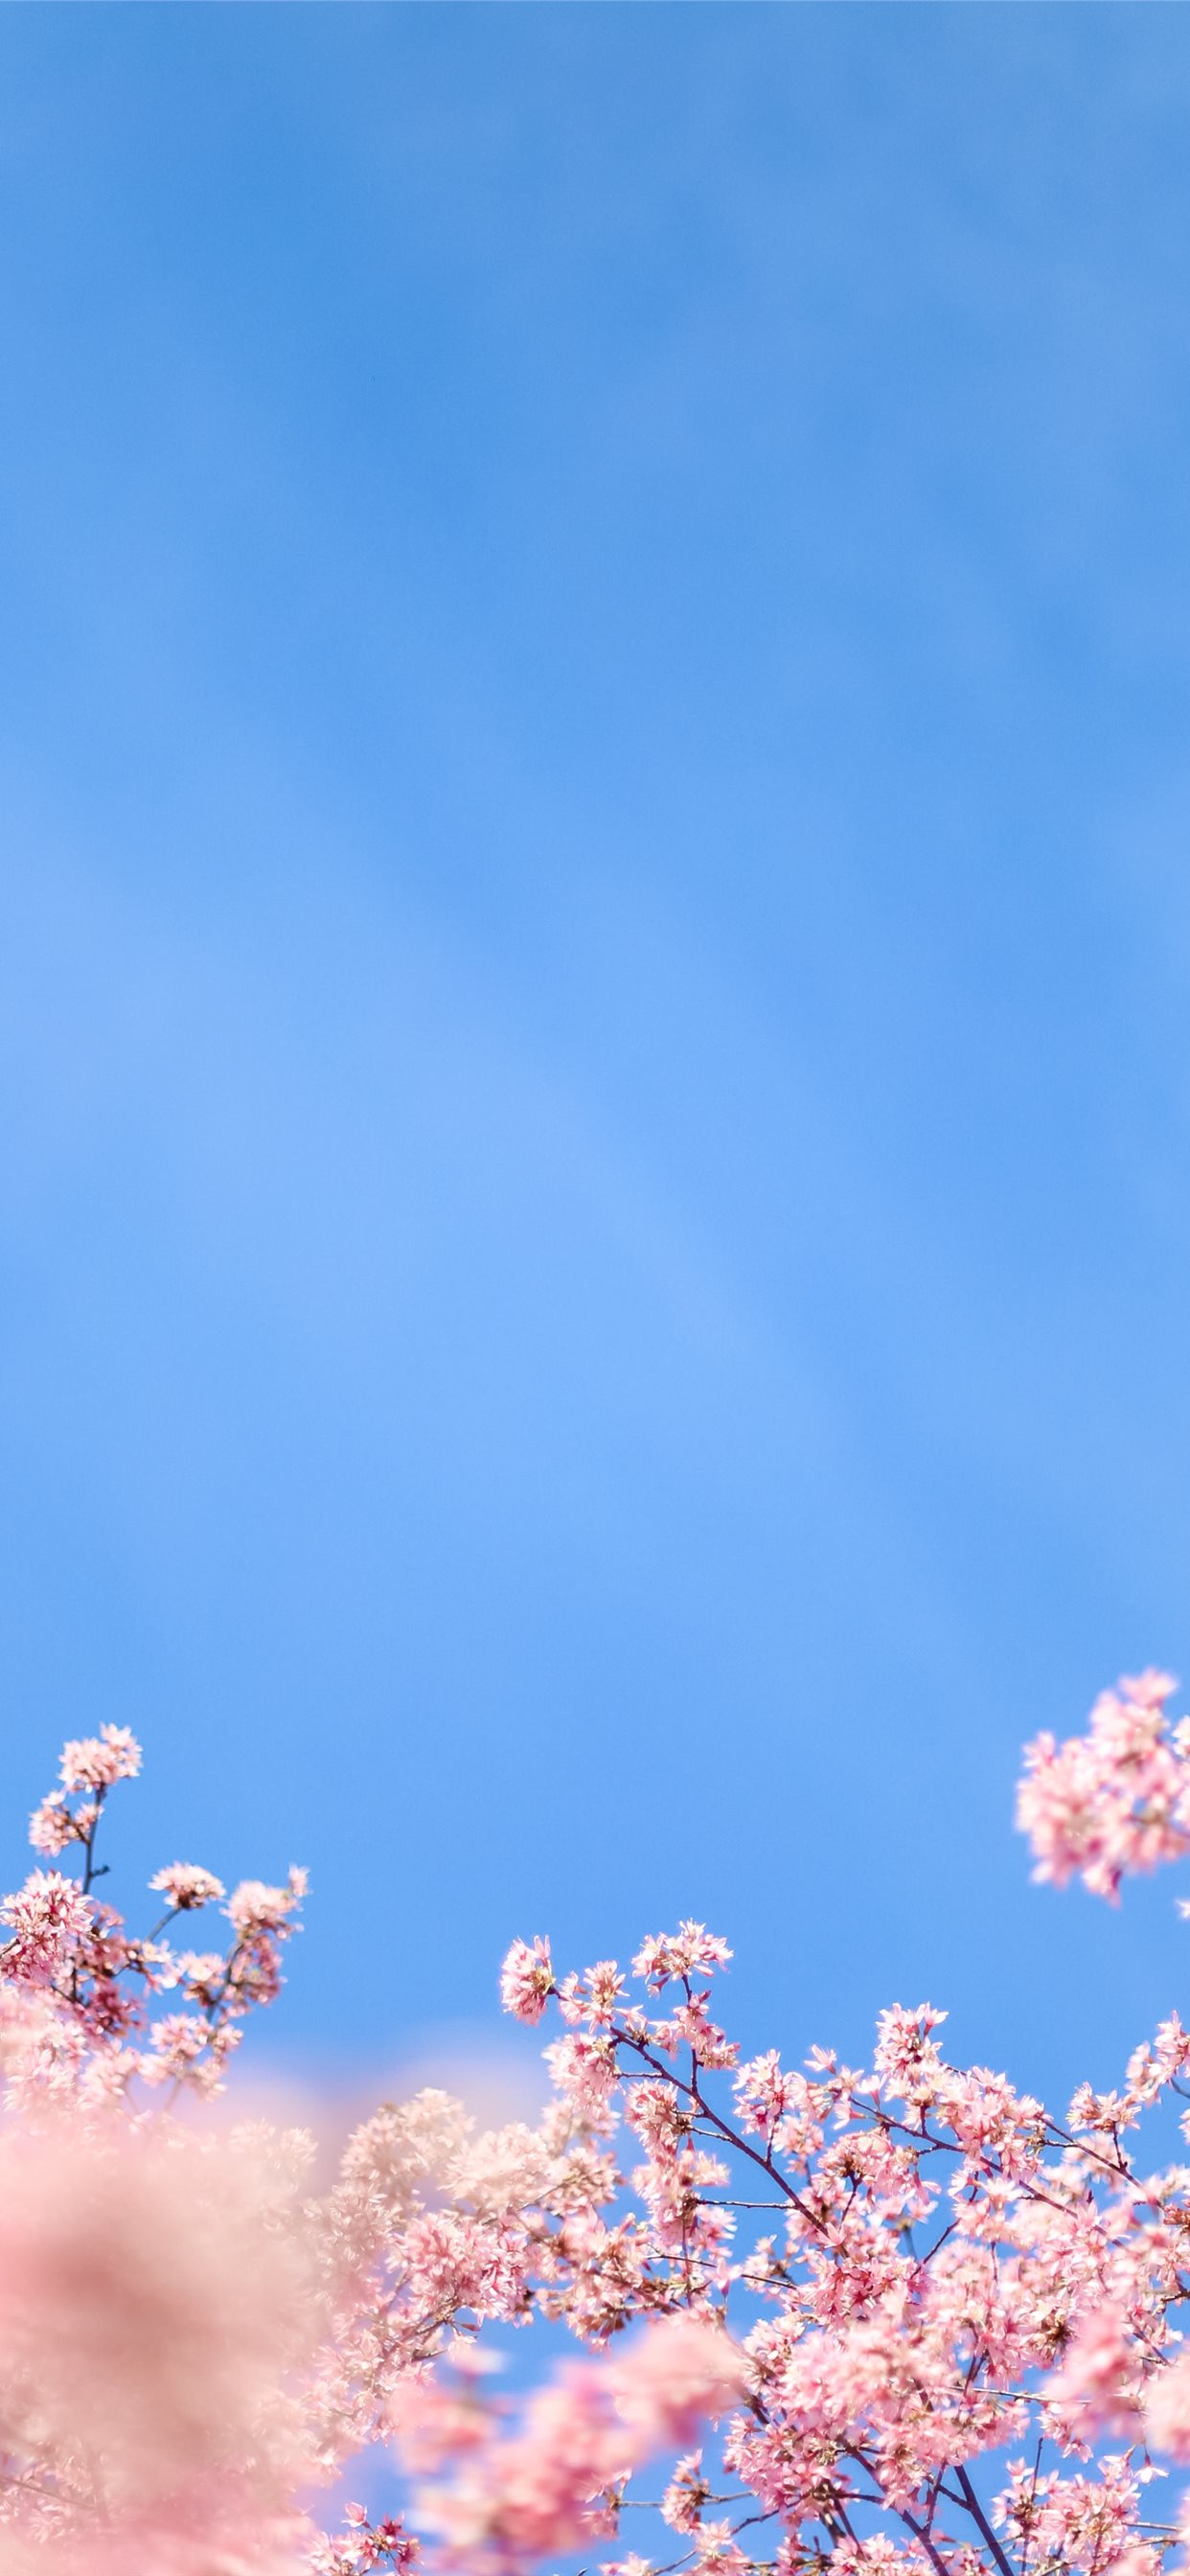 White Cherry Blossom Under Blue Sky During Daytime Iphone X Wallpapers Free Download